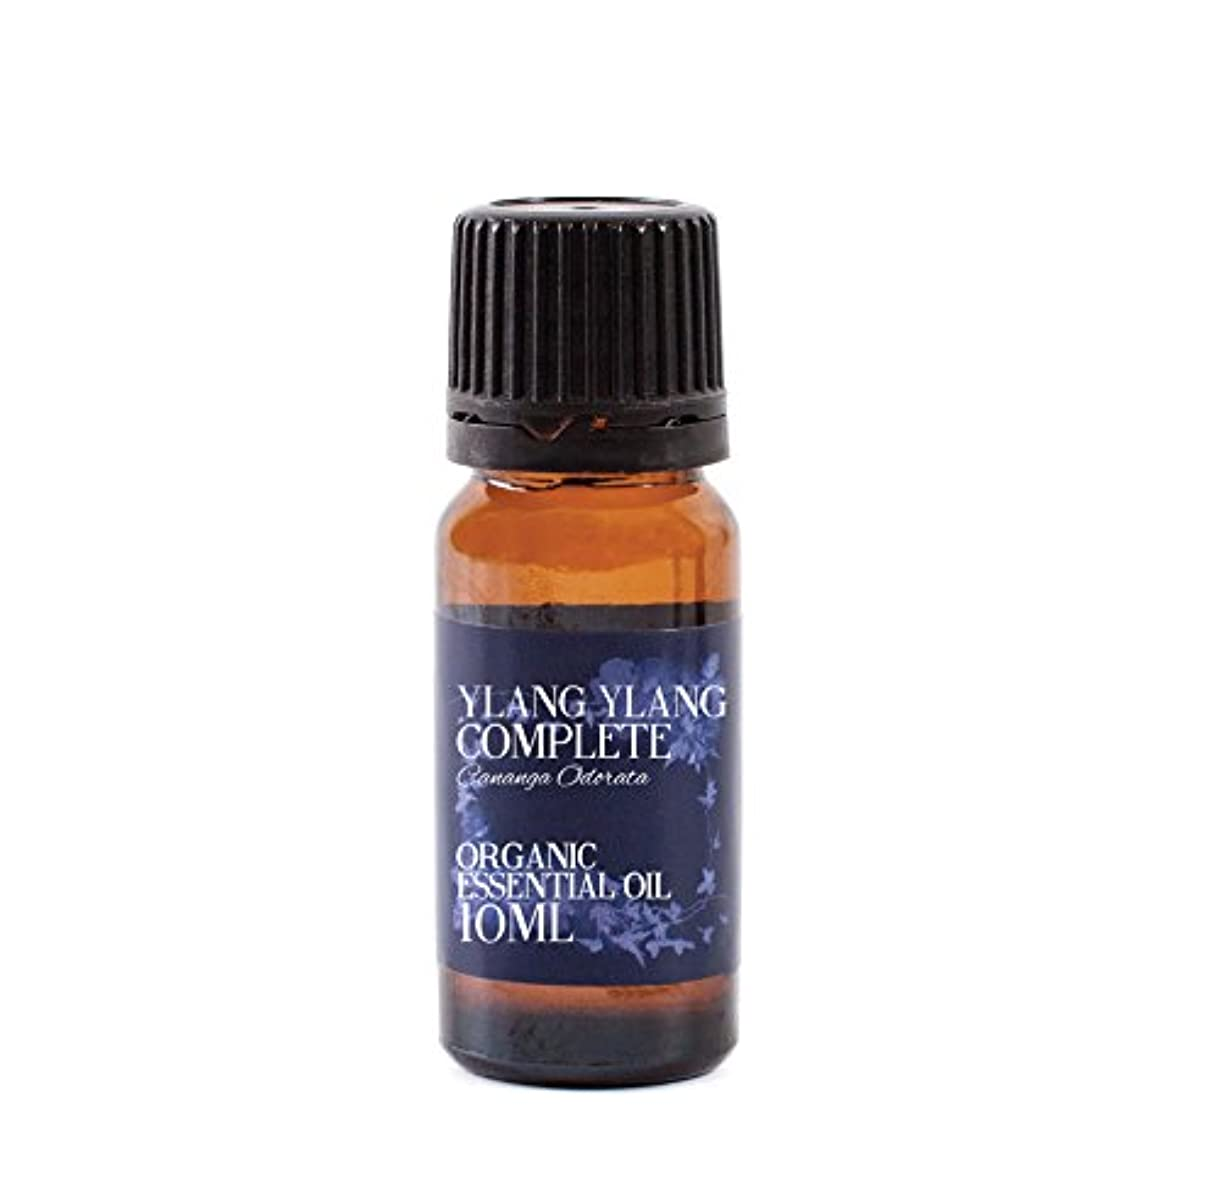 にもかかわらず確執騒々しいMystic Moments | Ylang Ylang Complete Organic Essential Oil - 10ml - 100% Pure